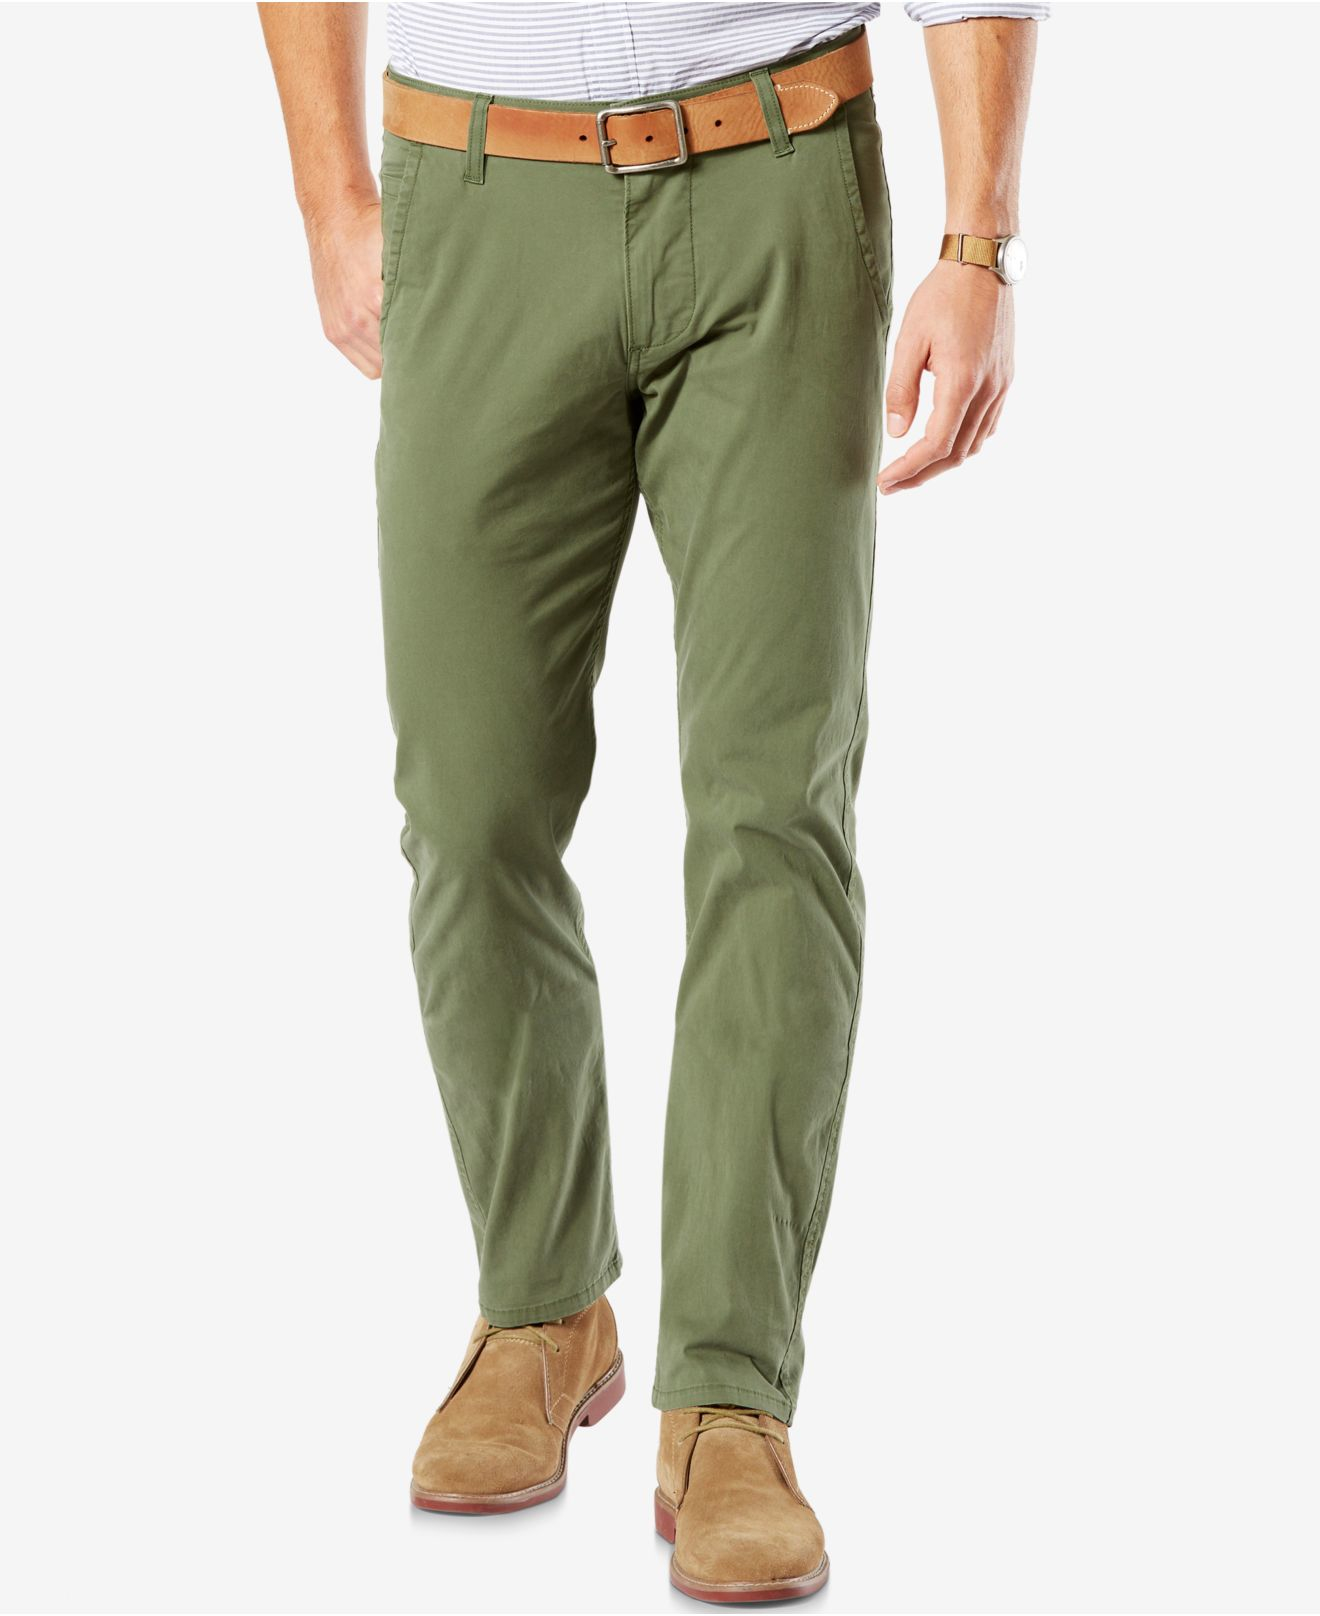 Simple Gap Women39s Classic Khaki Pants  Green  Size 8 Long  NWT  EBay